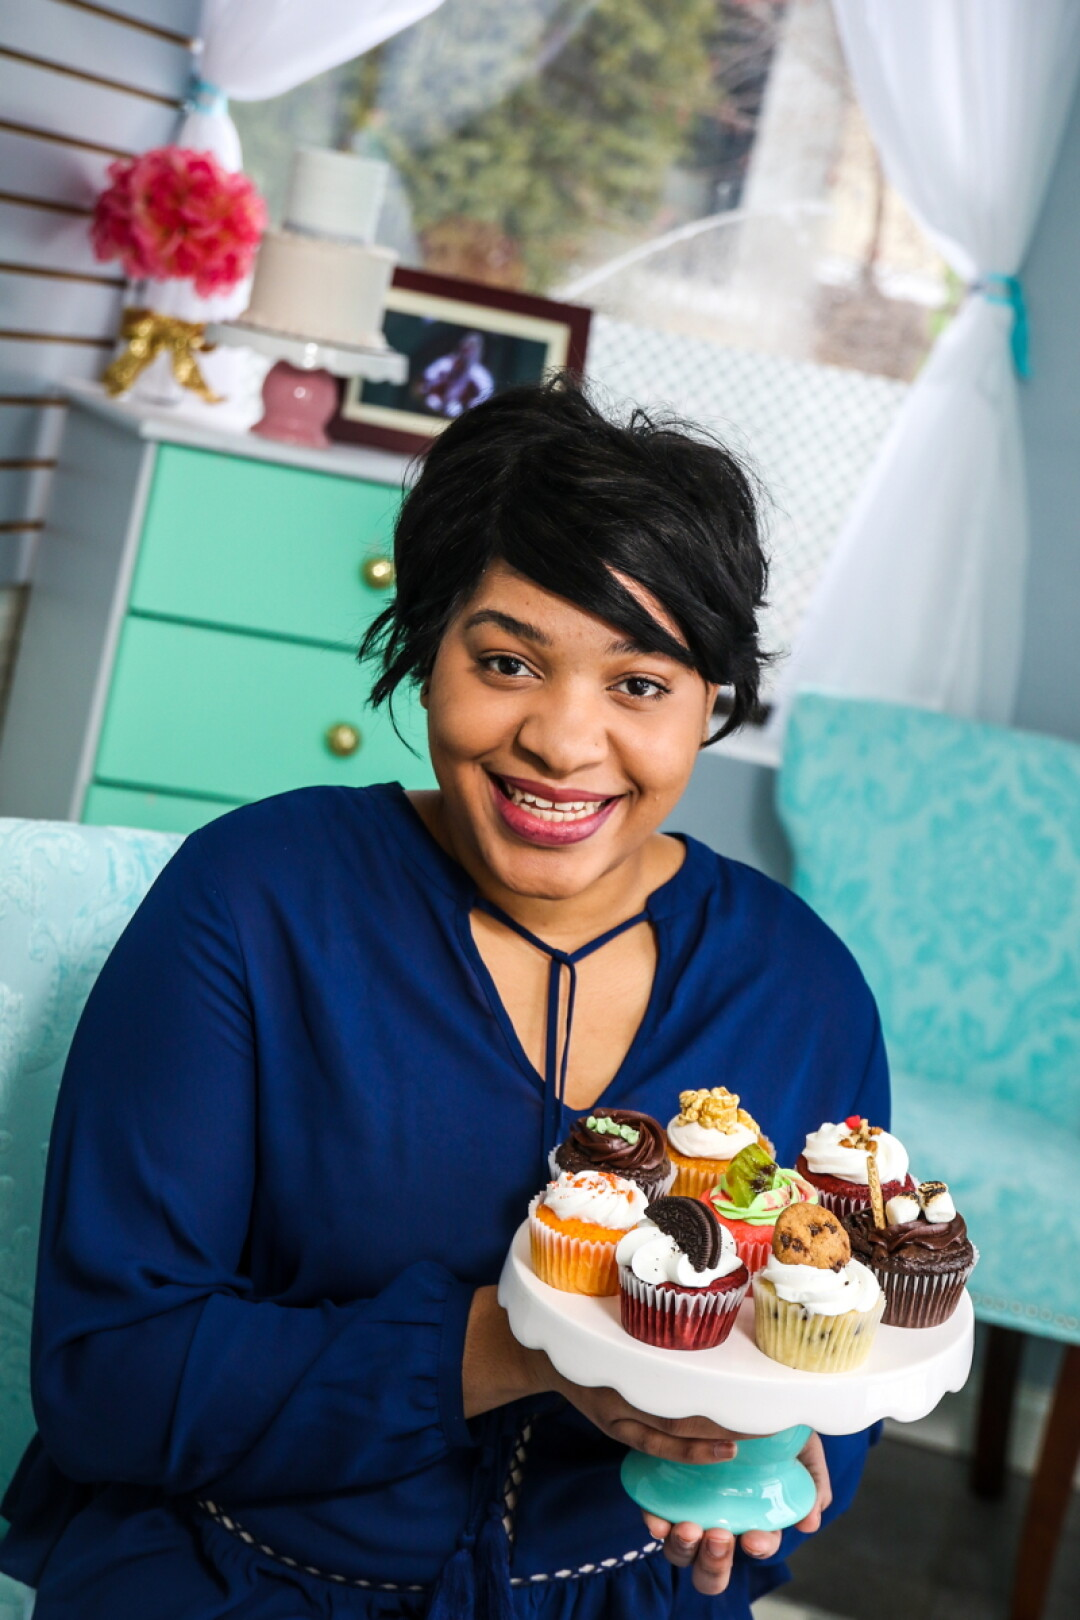 Farrah Miller recently opened her new cake shop, Chic Sweets By Farrah, at 310 Water St. in Eau Claire.